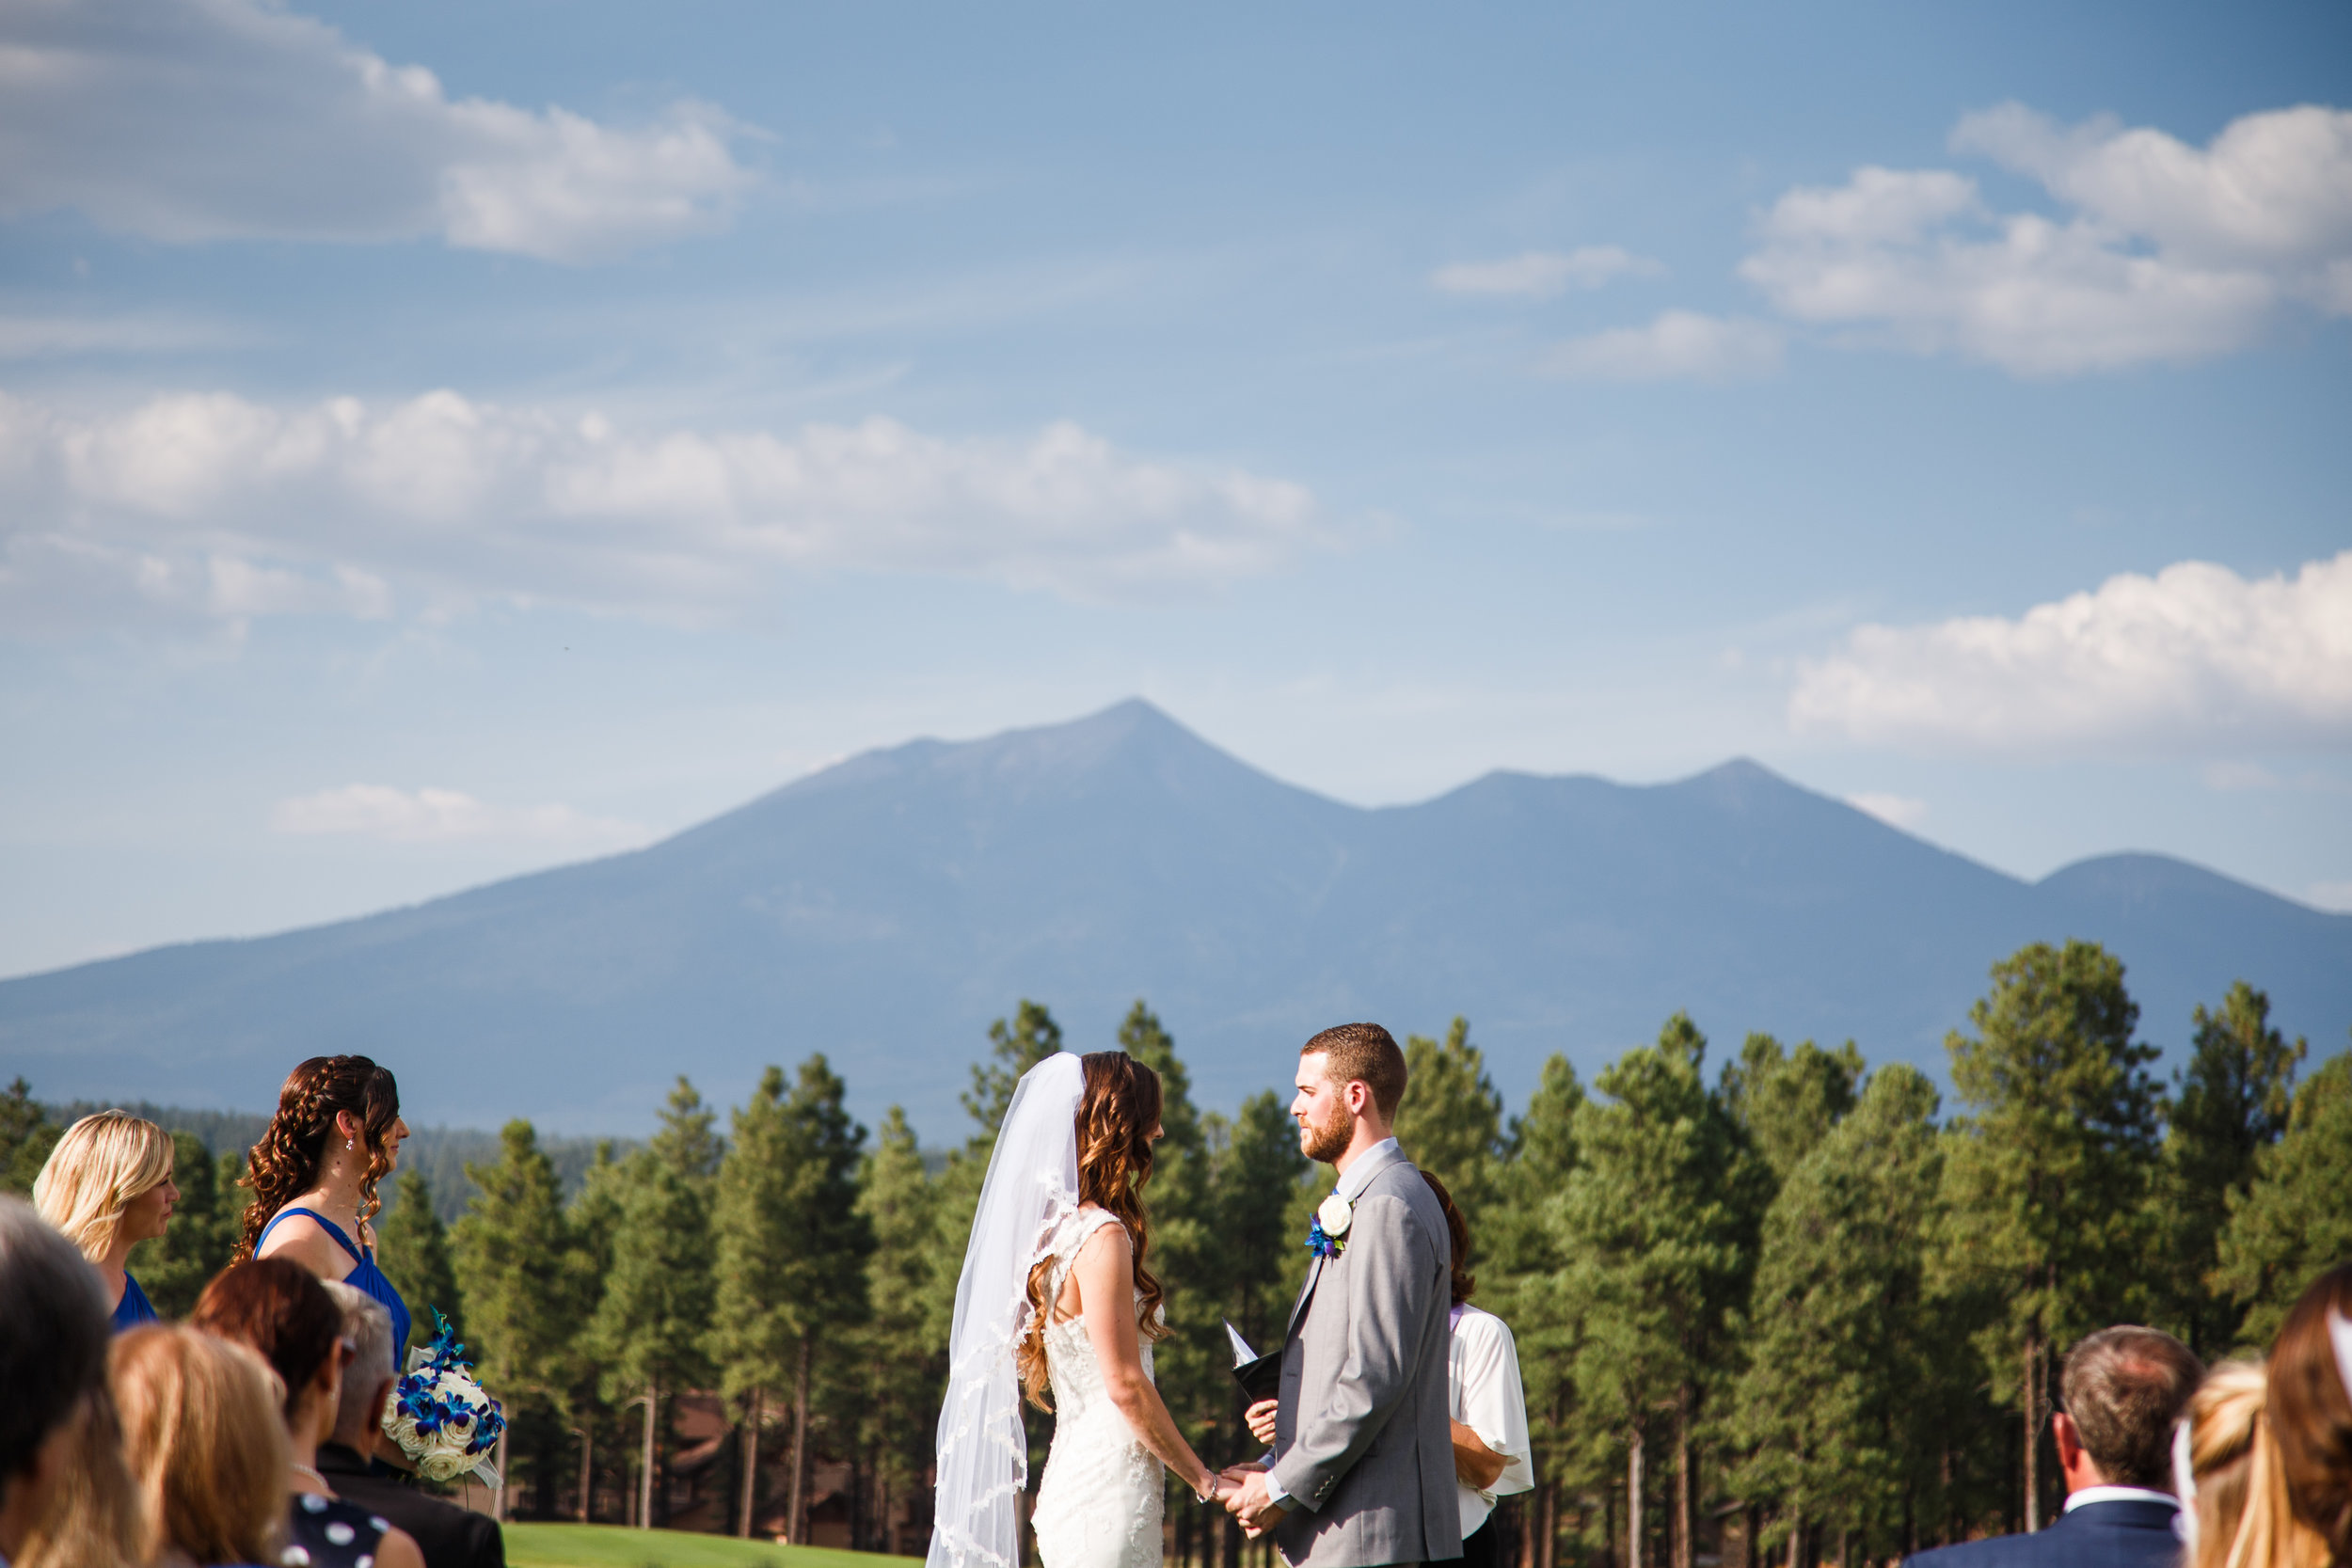 Flagstaff Ranch offers an O.K view of the San Francisco Peaks. Just kidding, it's pretty fantastic!